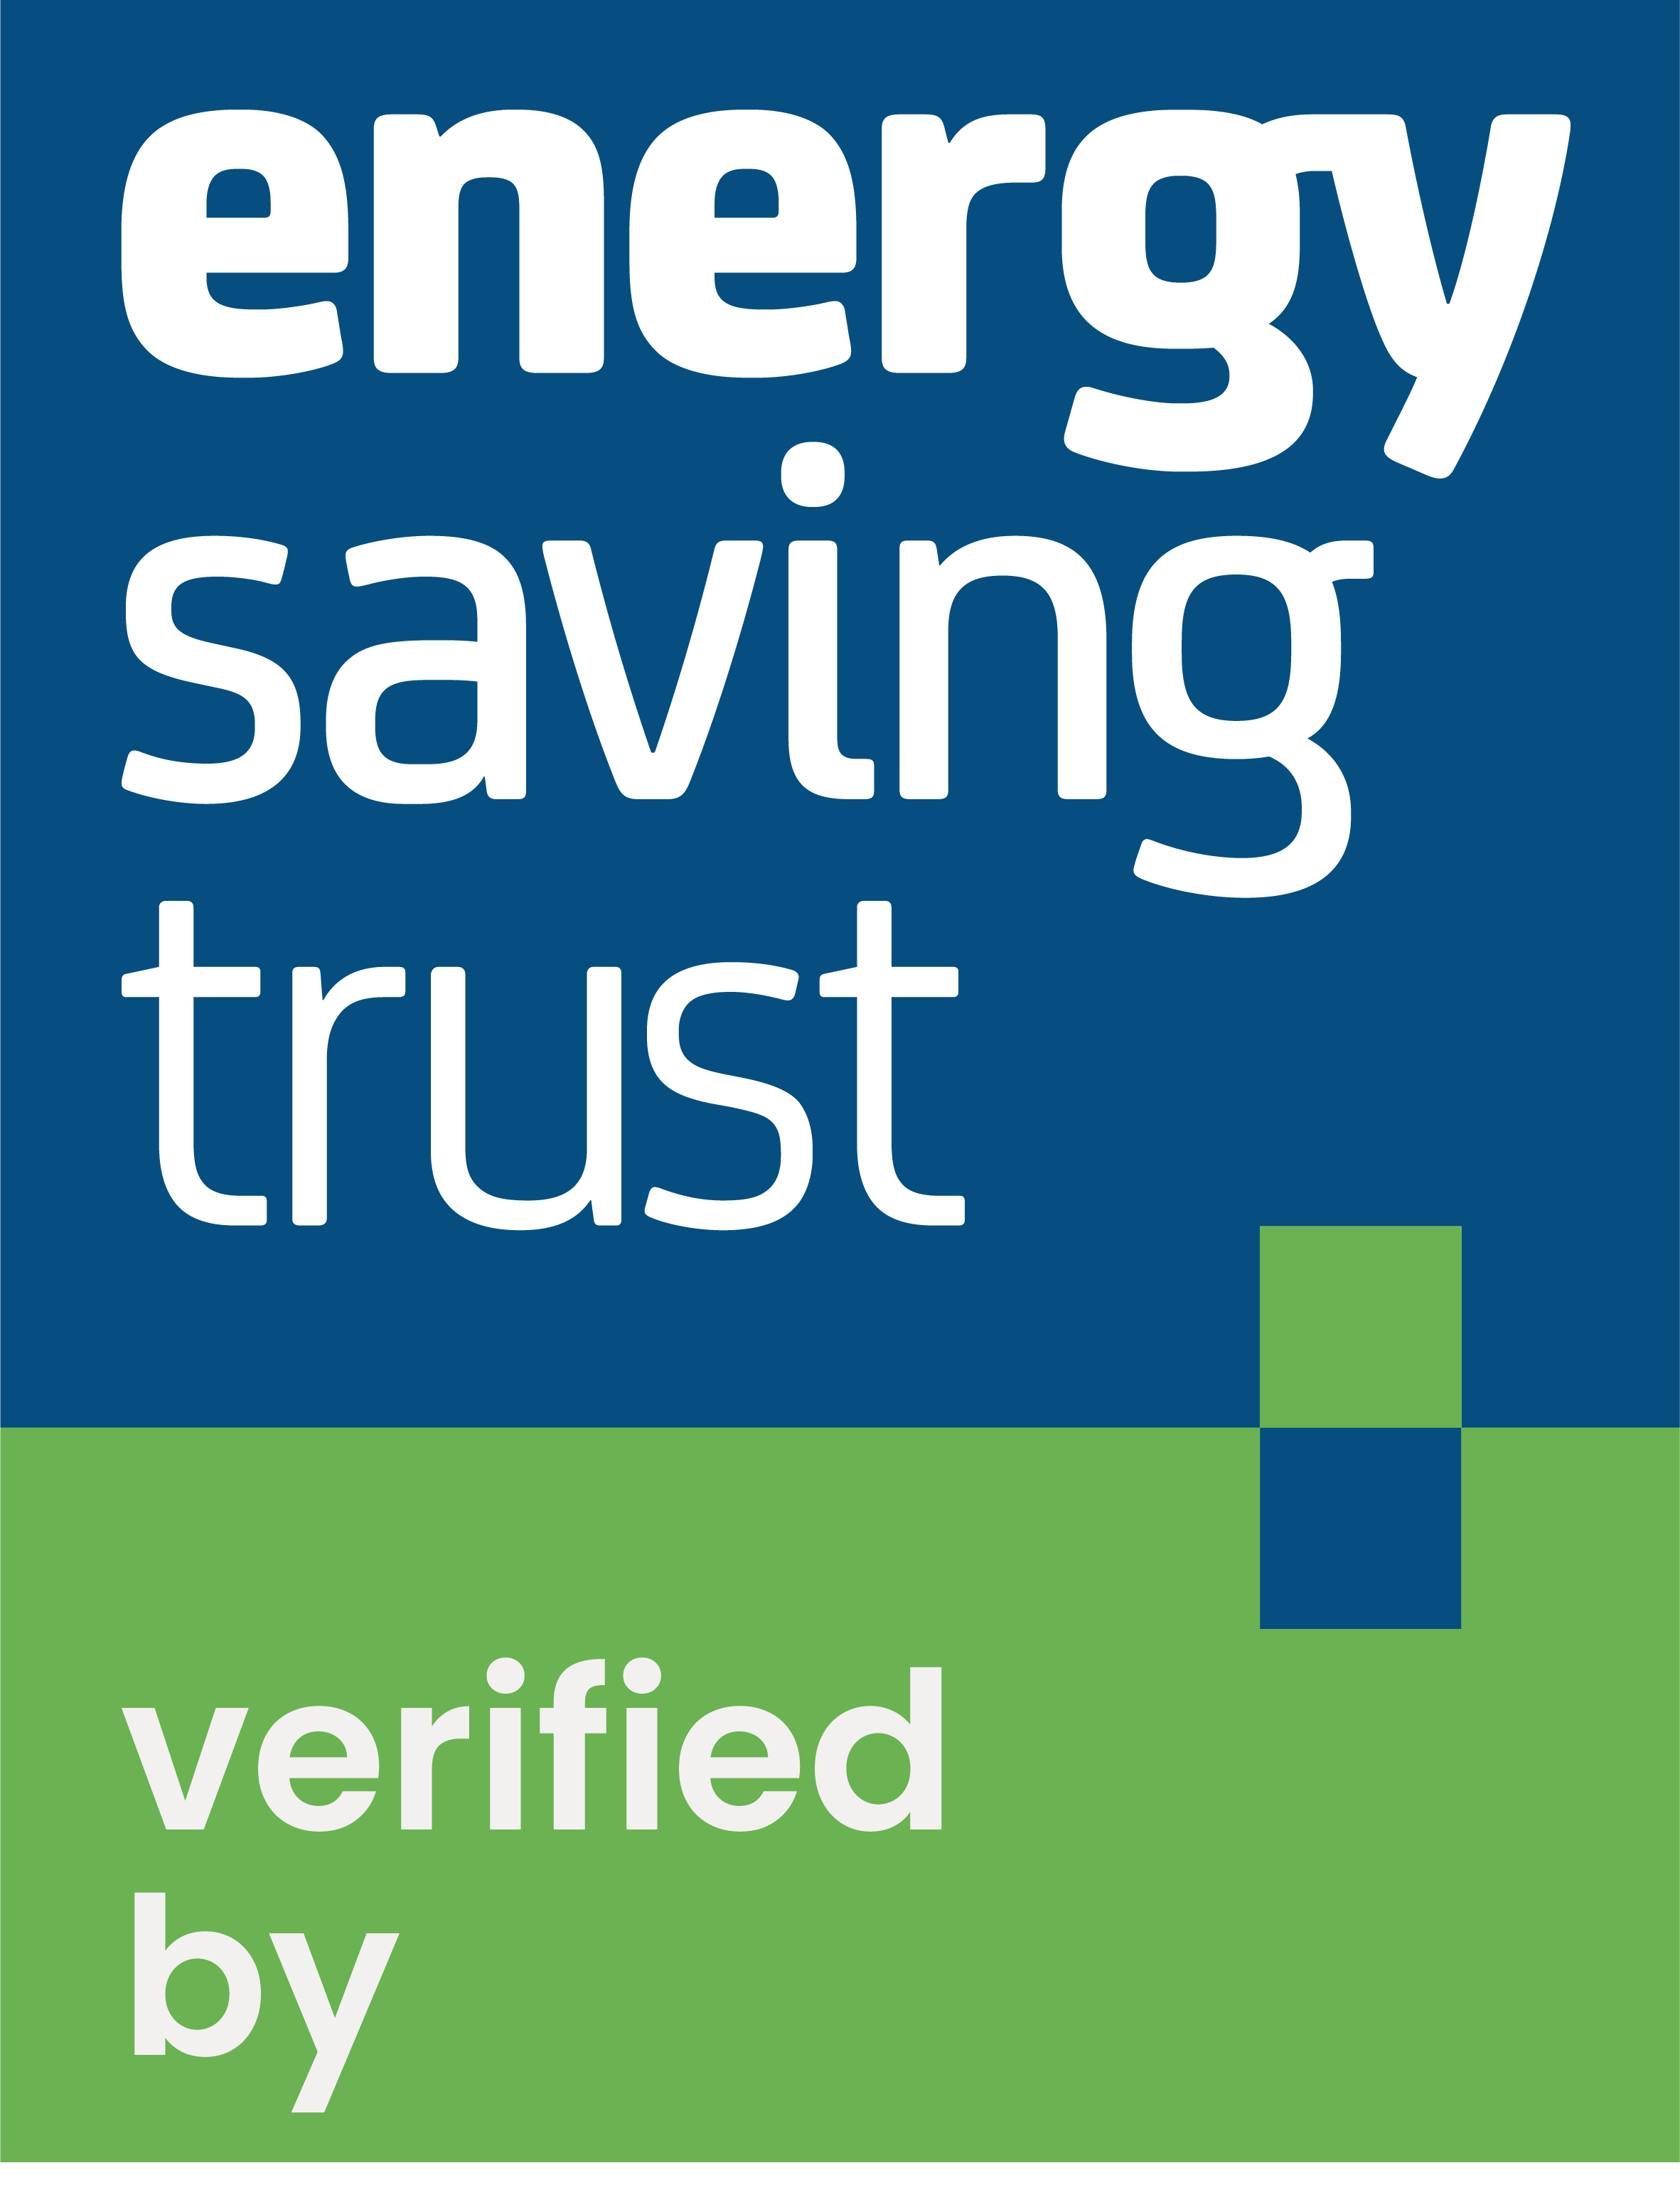 verified by Energy Saving Trust